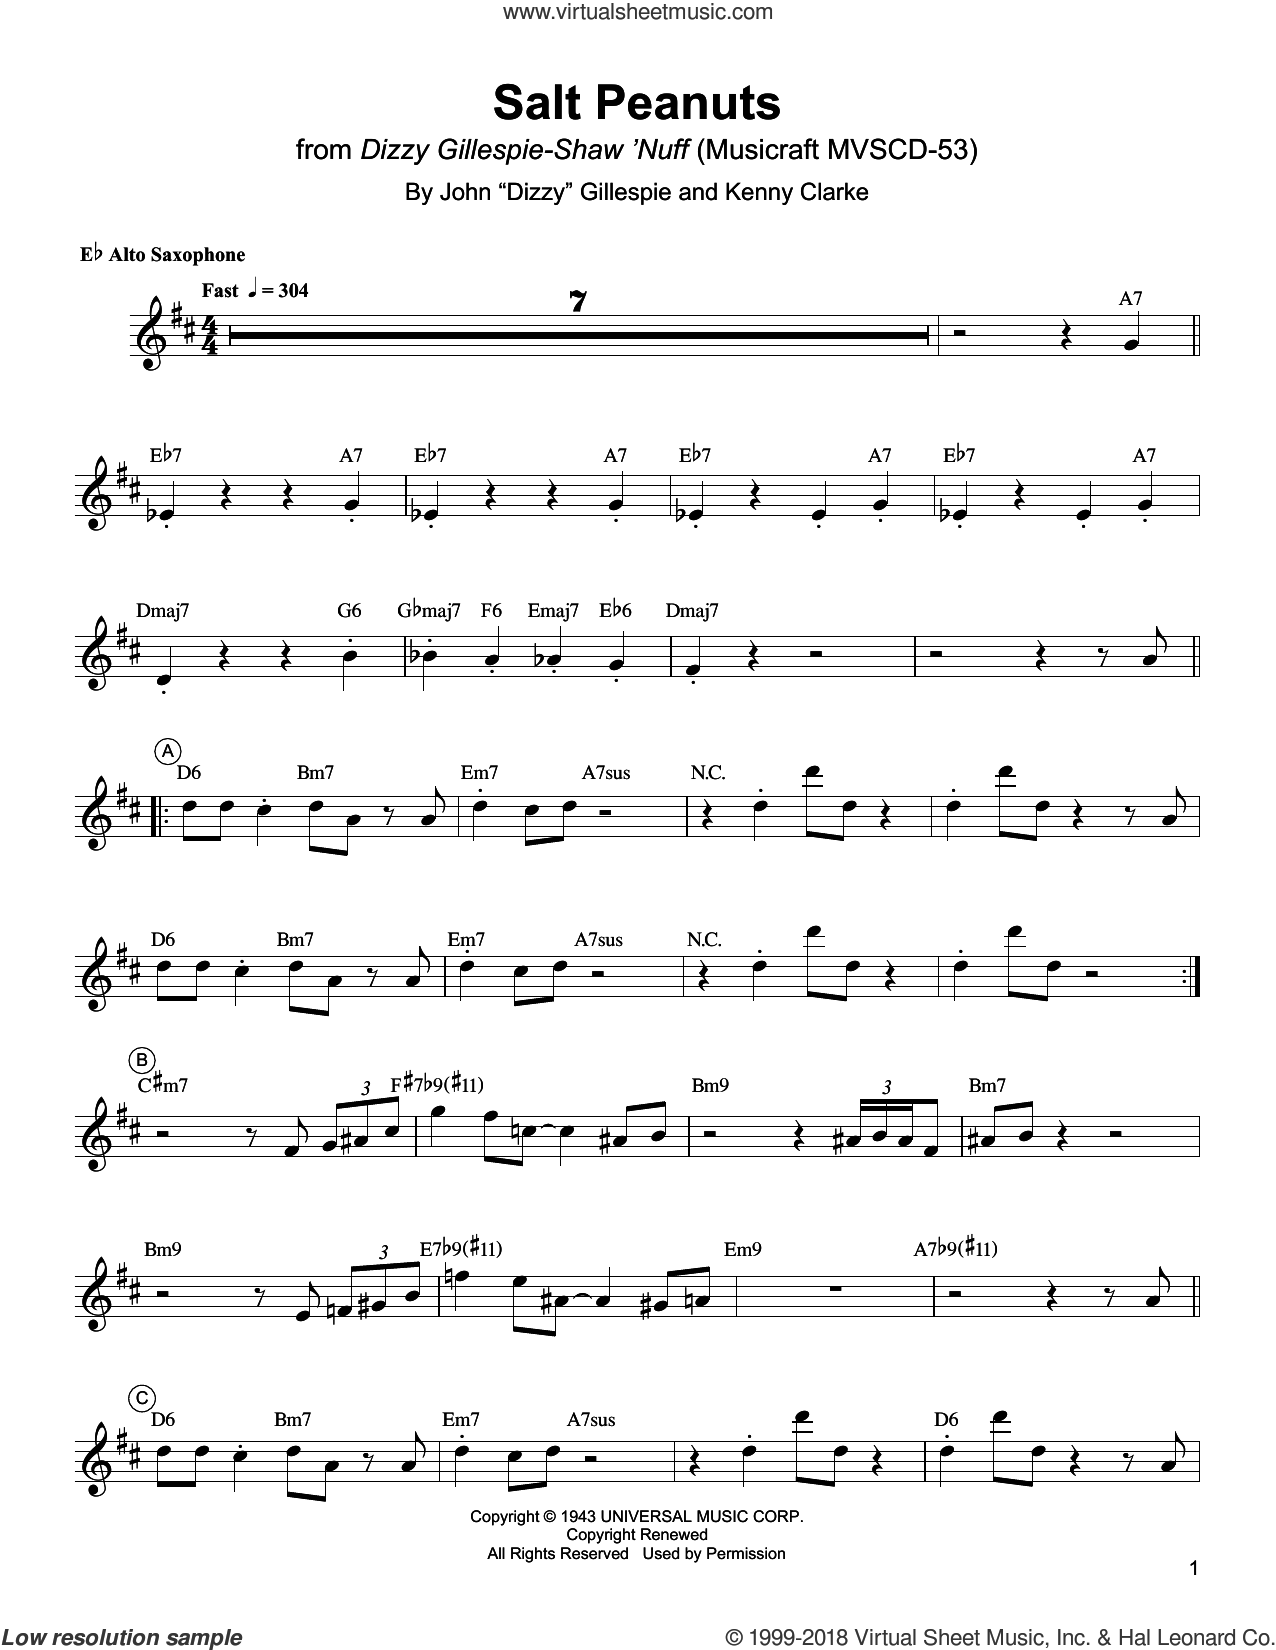 Salt Peanuts sheet music for alto saxophone (transcription) by Charlie Parker, Dizzy Gillespie and Kenny Clarke, intermediate skill level